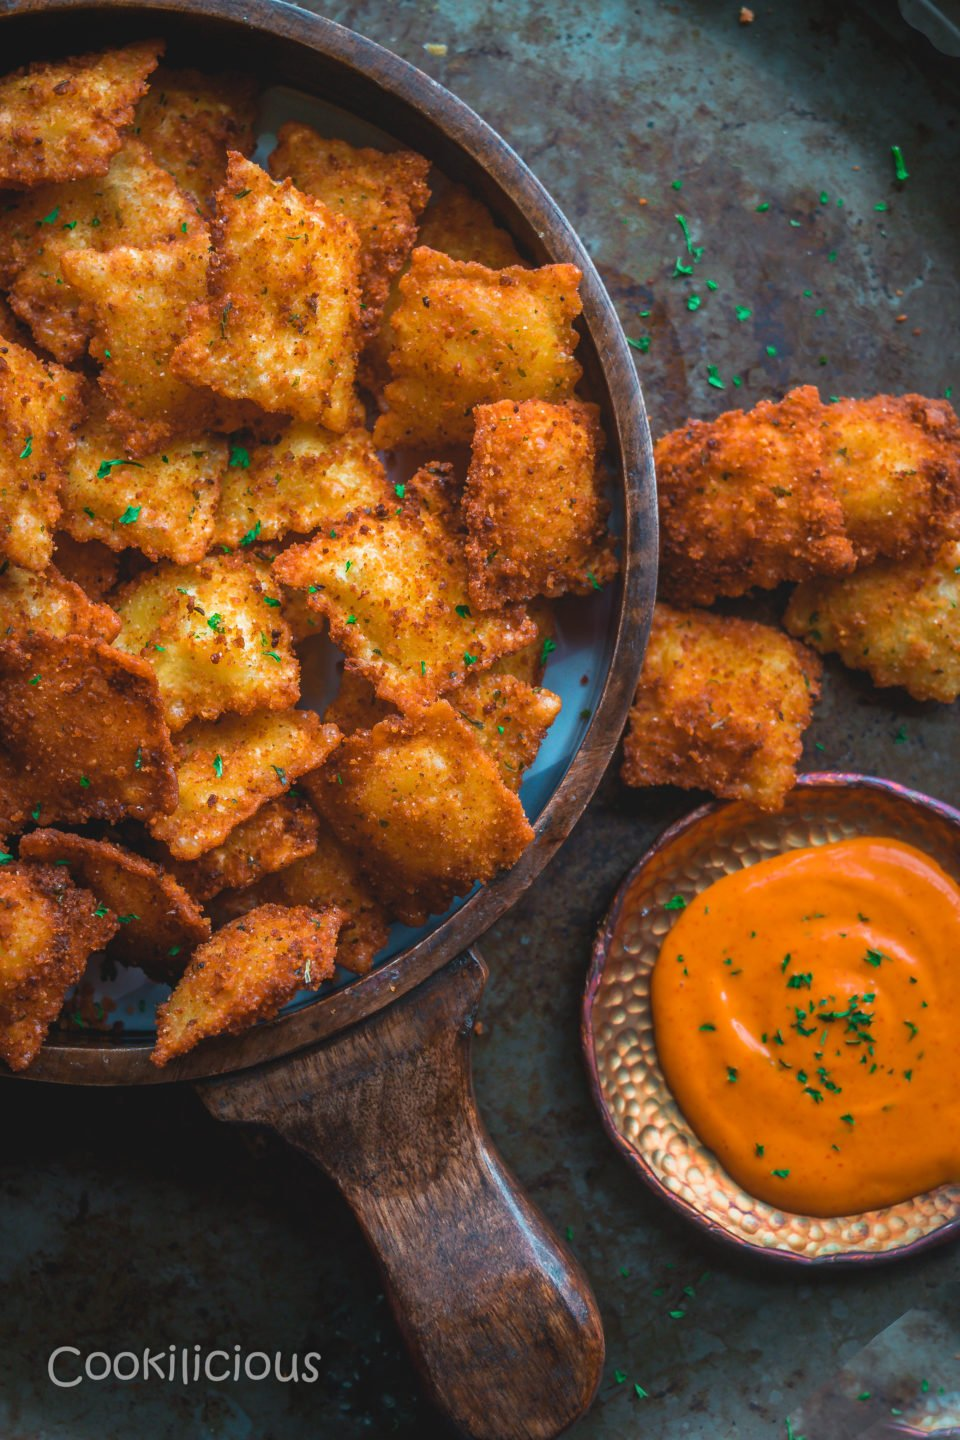 image of half a tray filled with Copycat Olive Garden Cheesy Fried Ravioli - vegan appetizer recipes